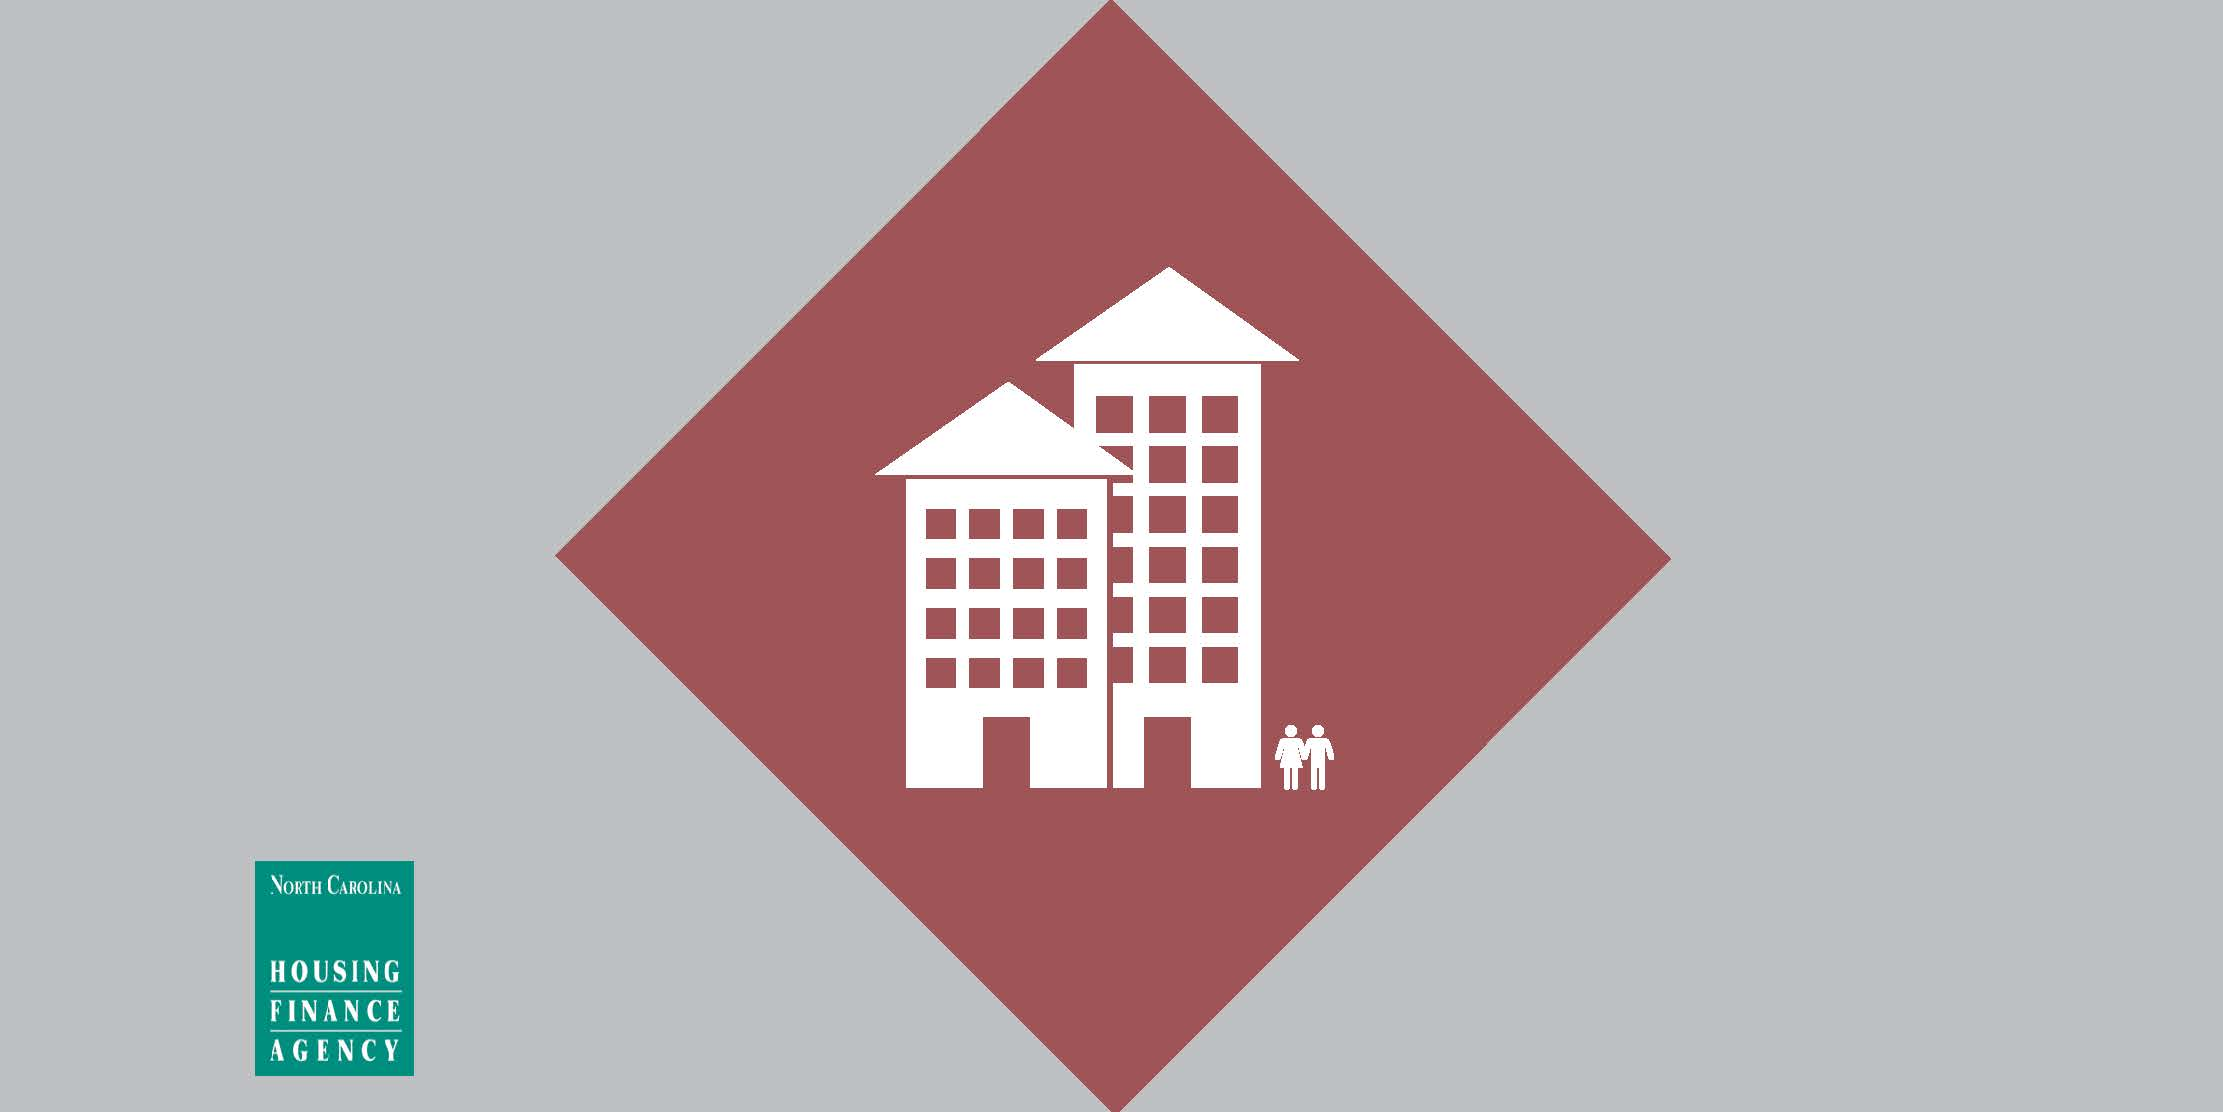 Apartments in center of red and gray graphic